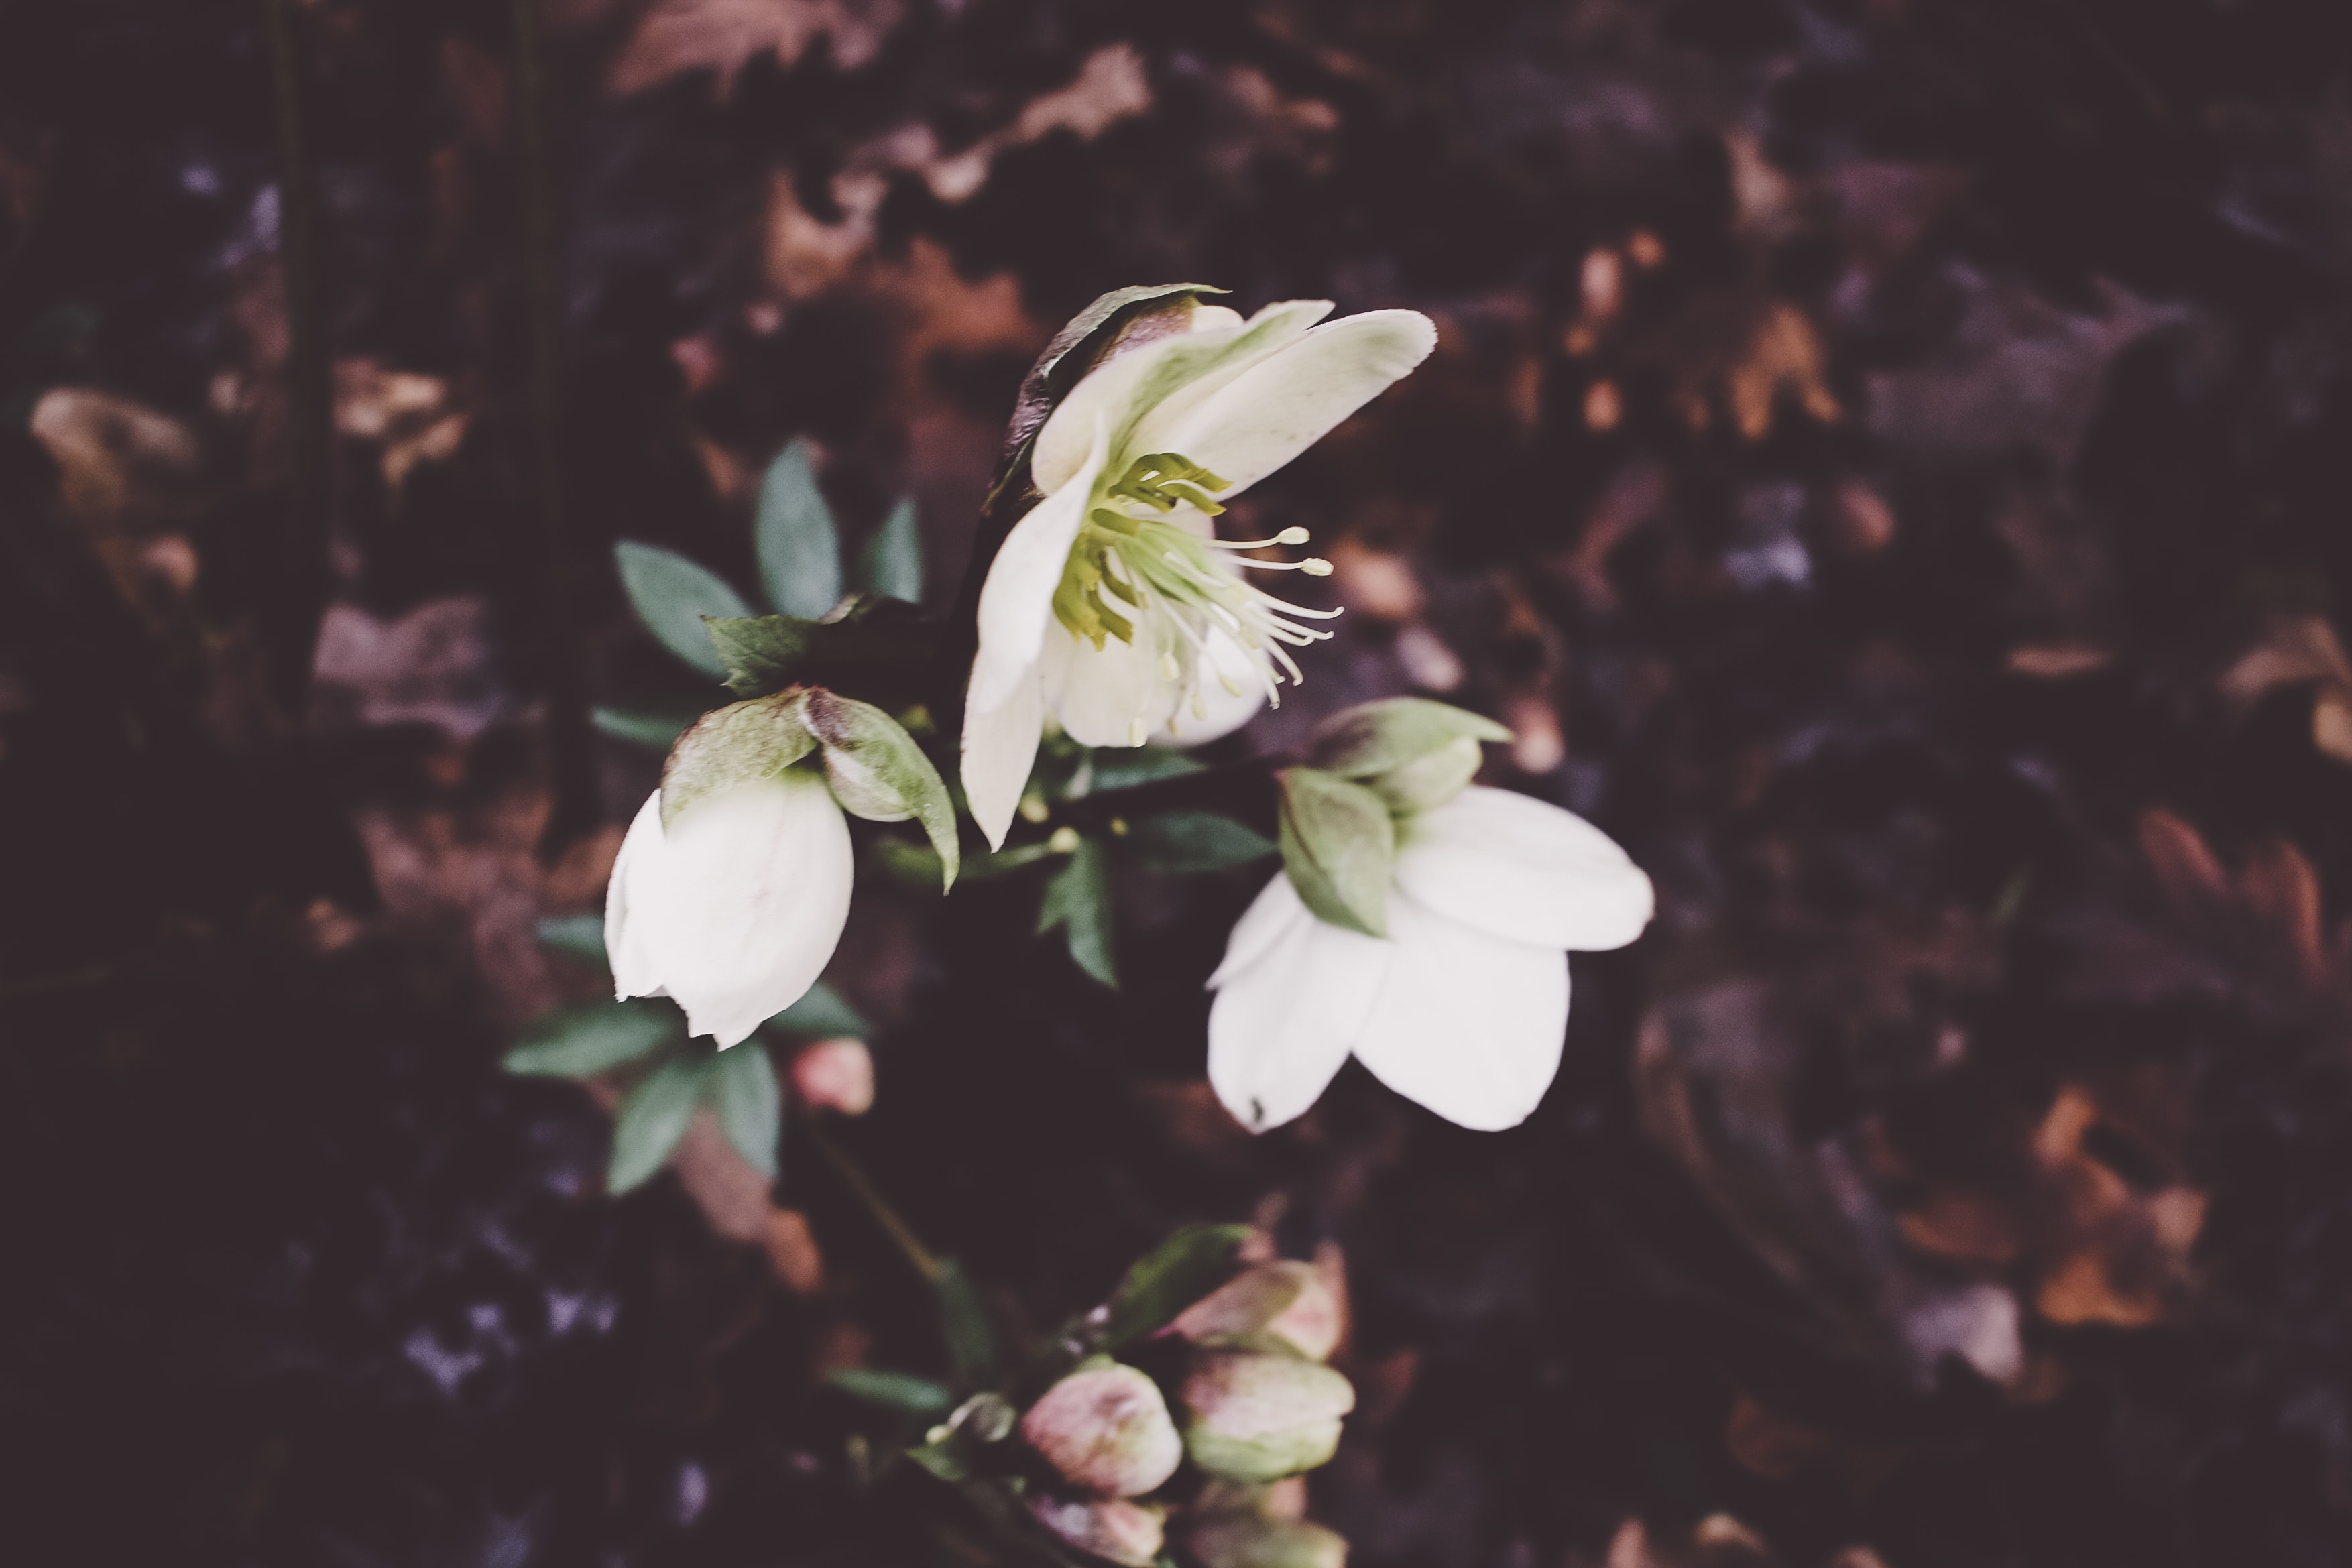 white petaled flowers in close-up photography